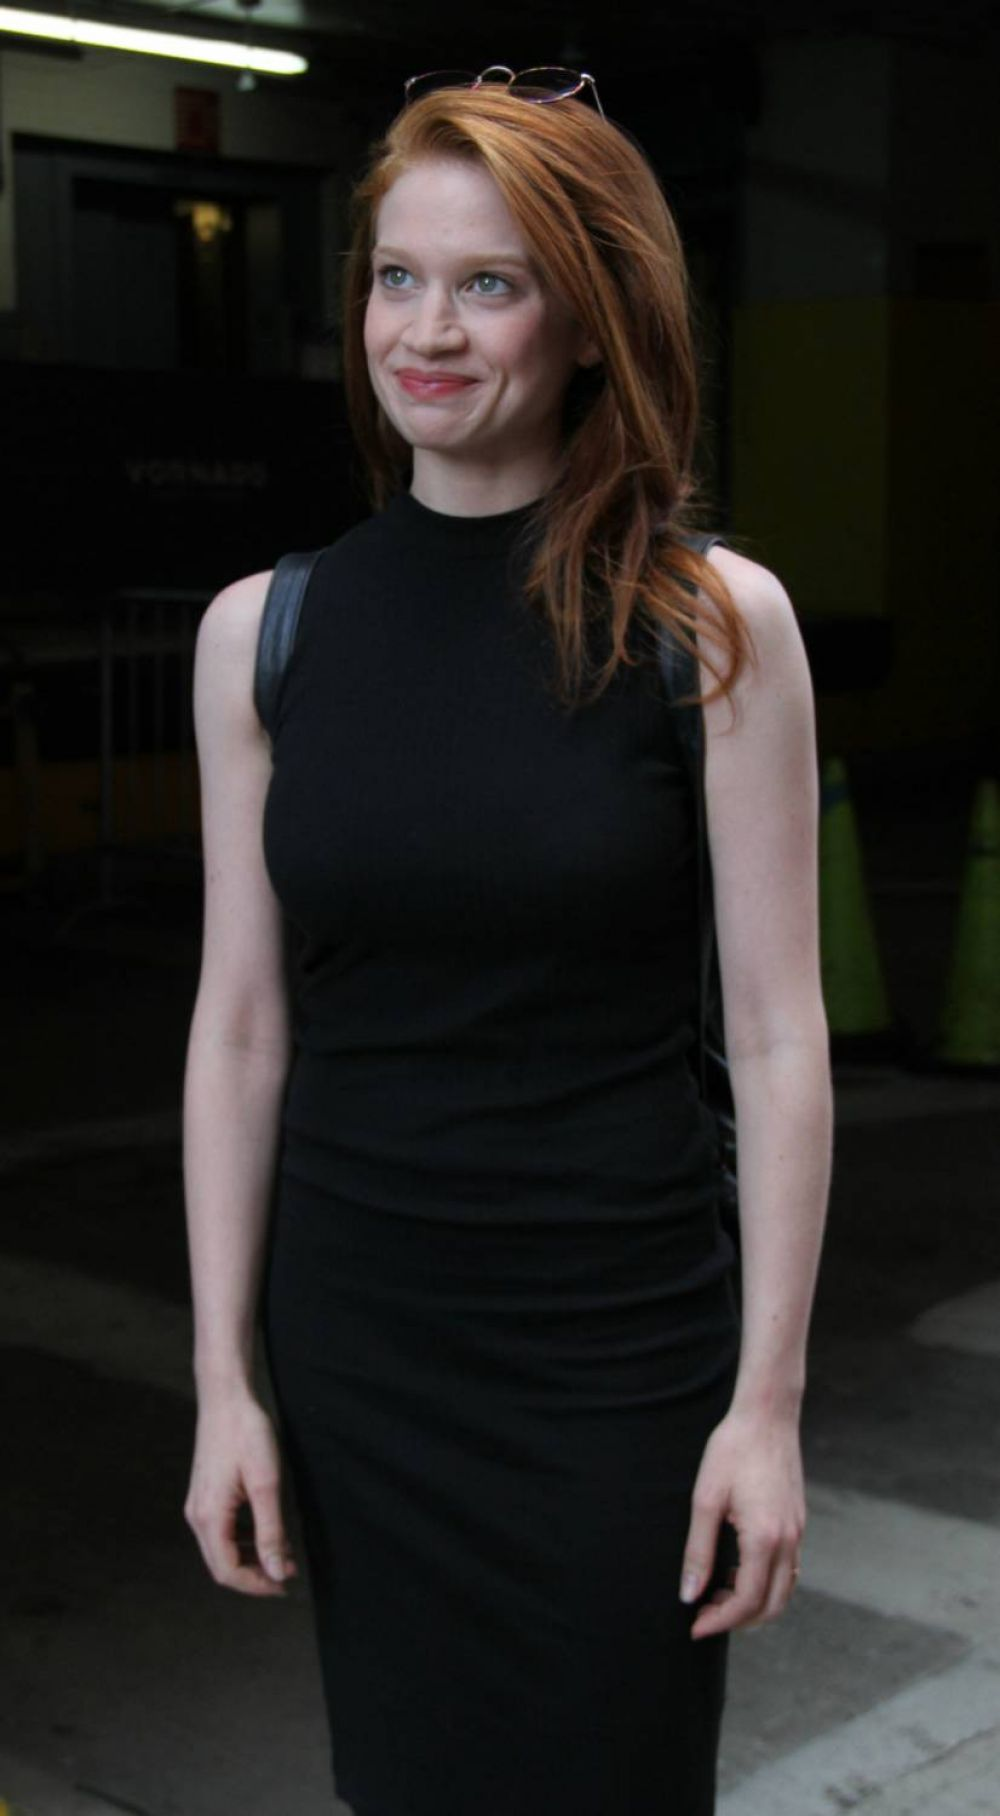 SARAH HAY at AOL Build Speaker Series in New York 07/23/2015